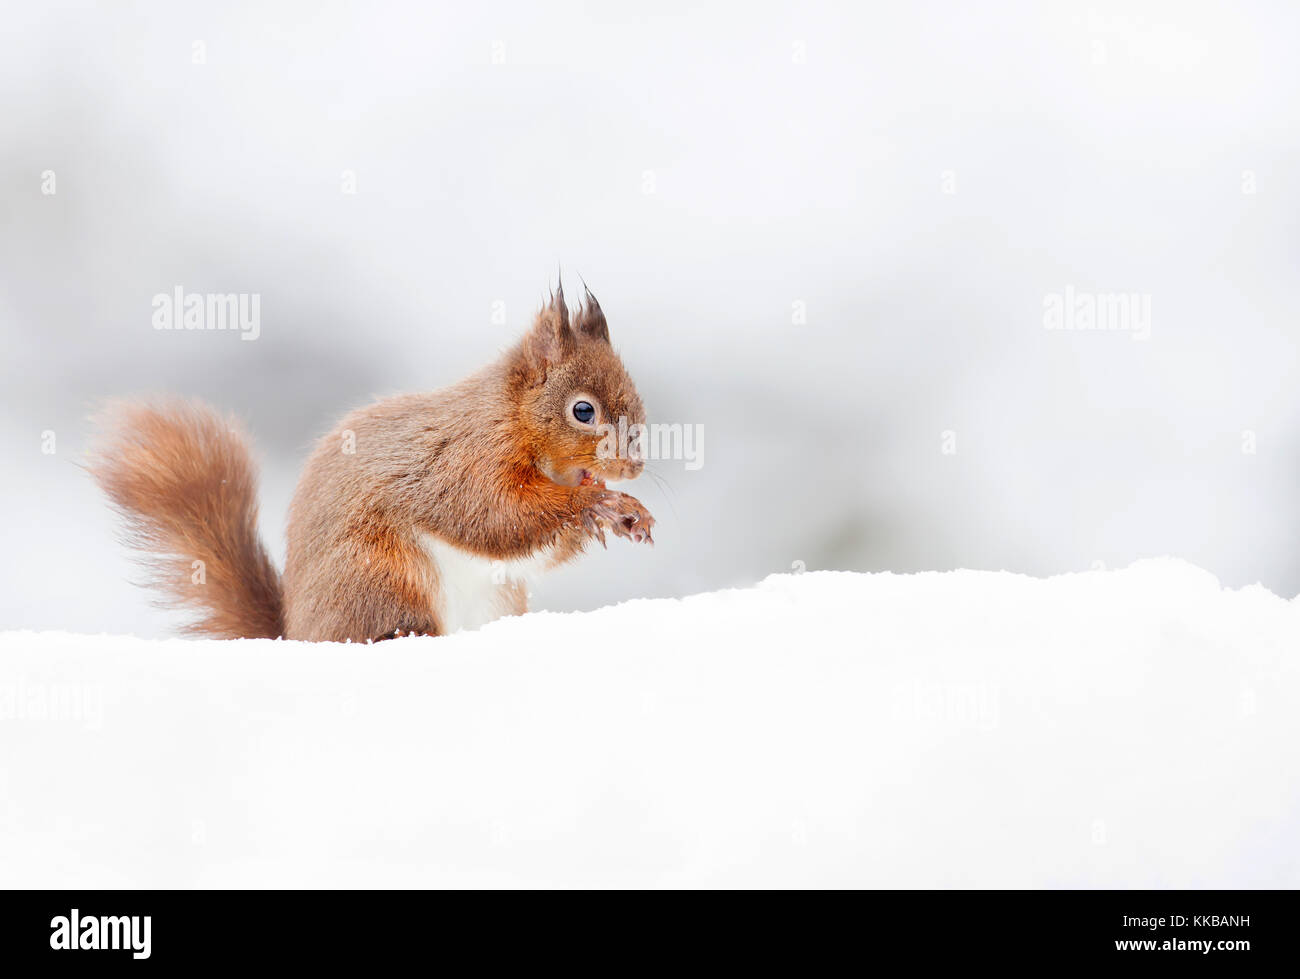 Red Squirrel sitting in the snow in winter, UK - Stock Image